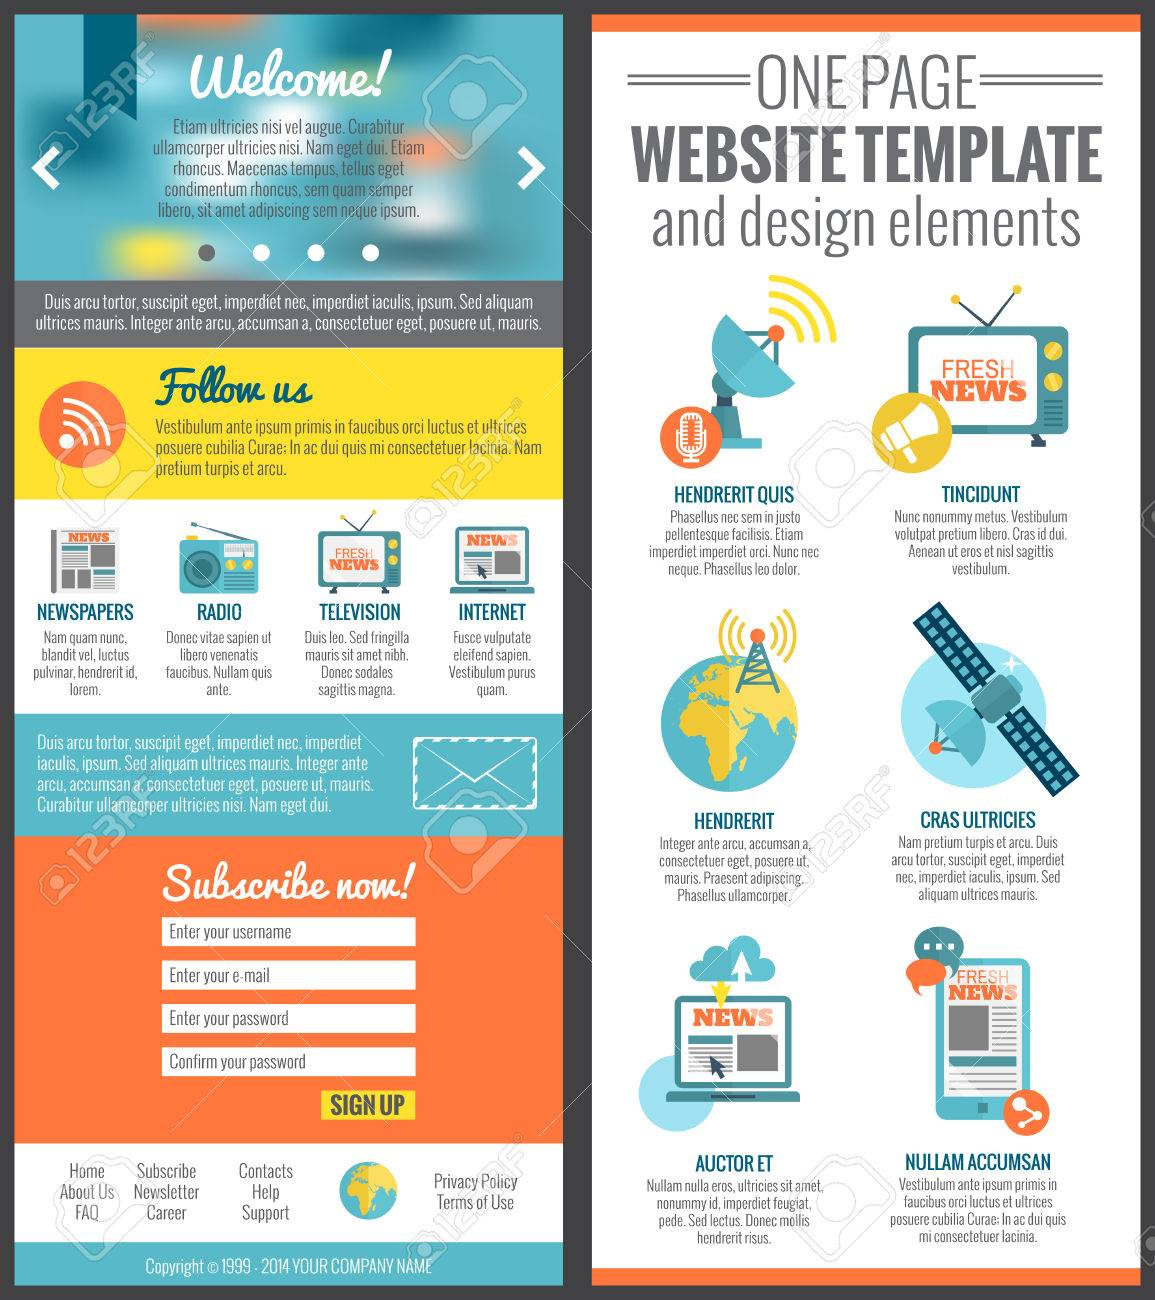 One Page Web Site Template For Mass Media Communication Industry ...